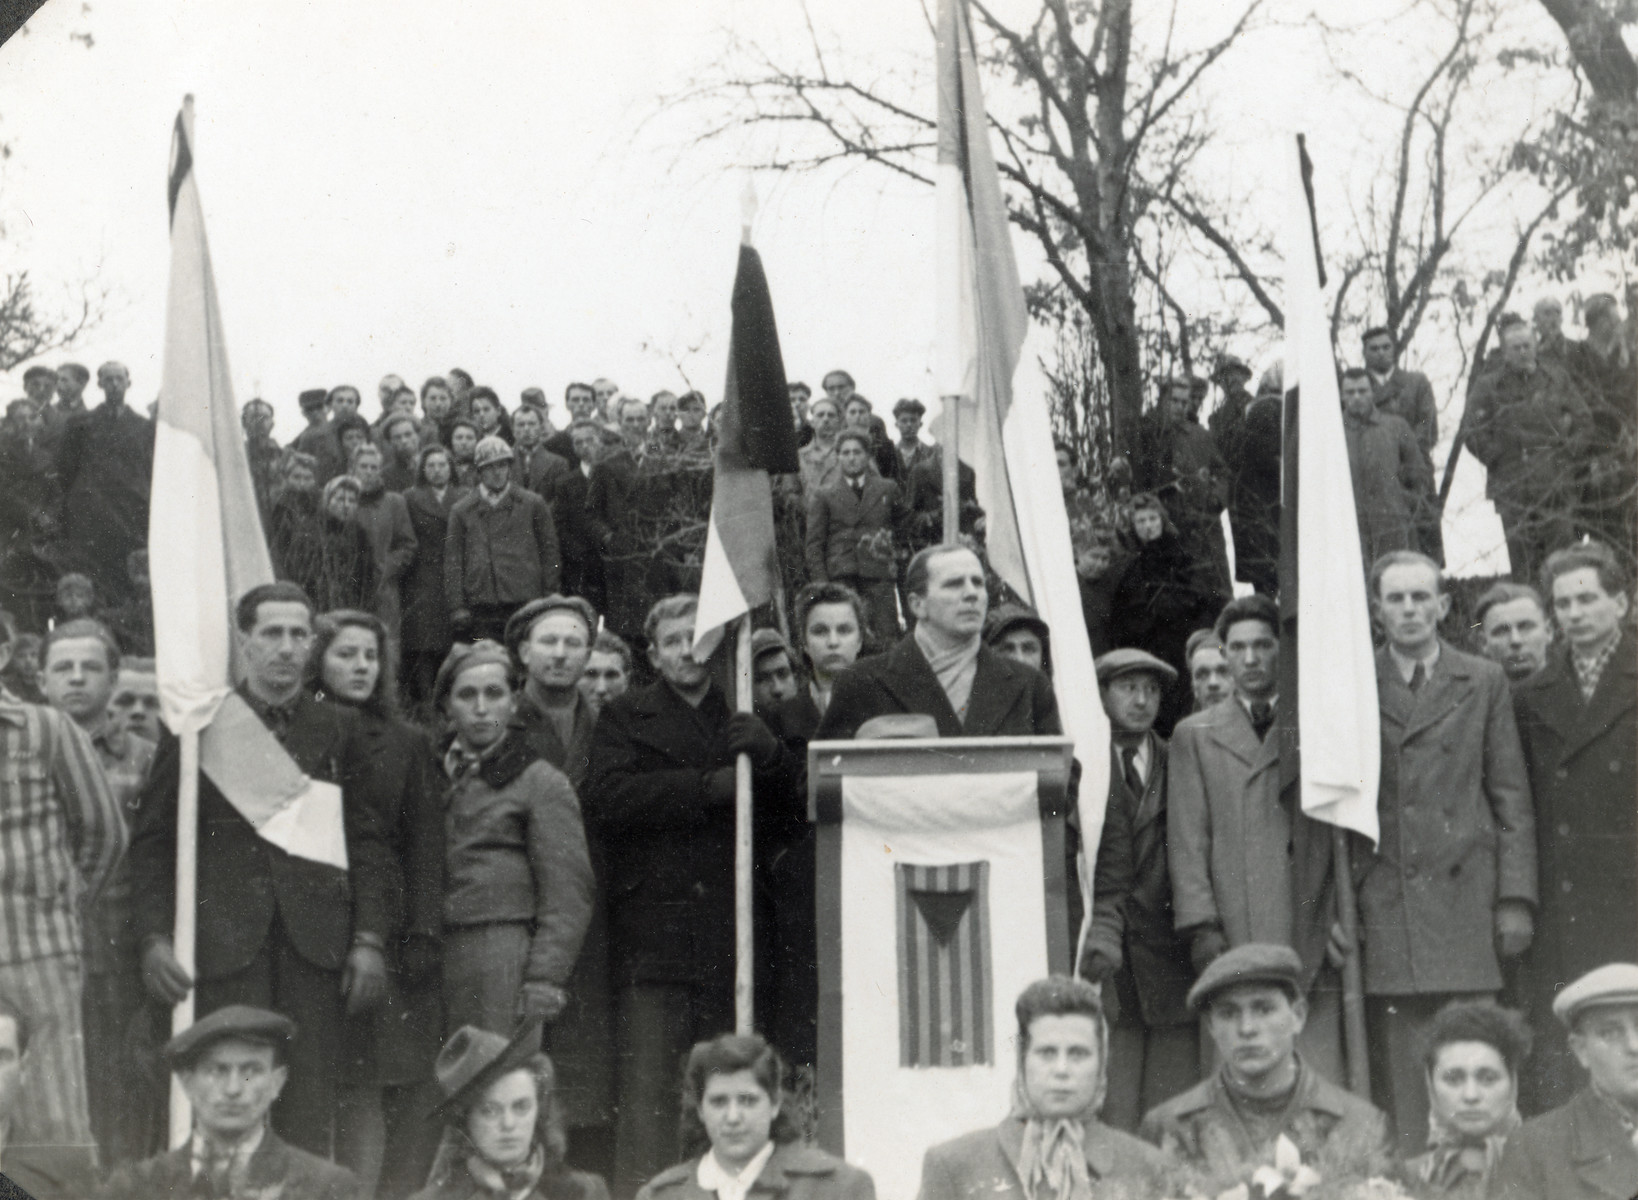 Survivors attend a dedication of the future monument to the victims of the Pocking concentration camp following the exhumation and reburial of the victims .